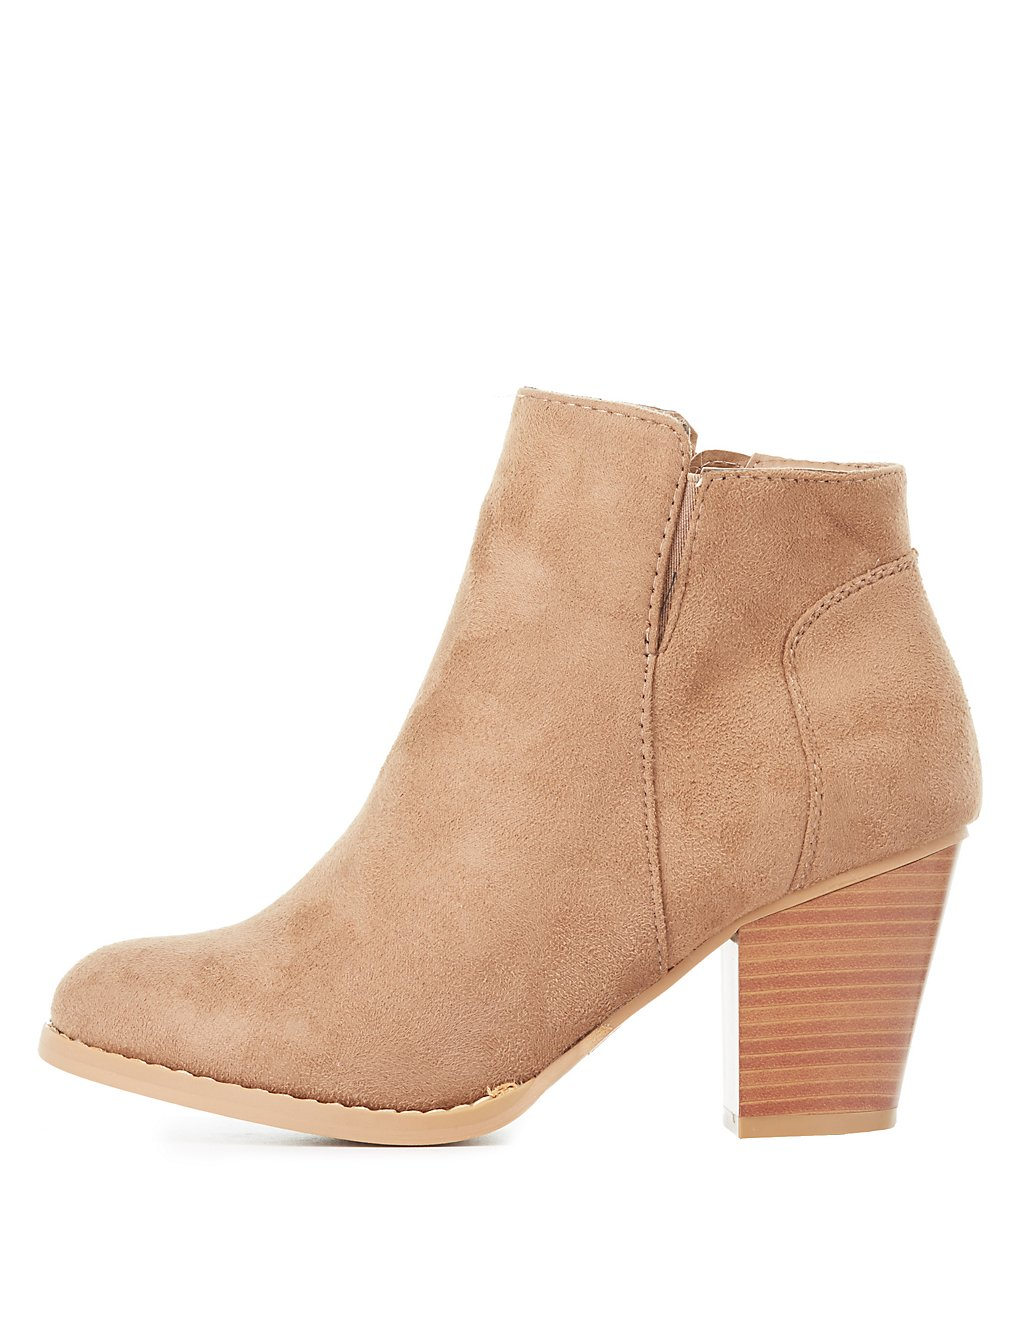 Faux Suede Boot from Charlotte Russe